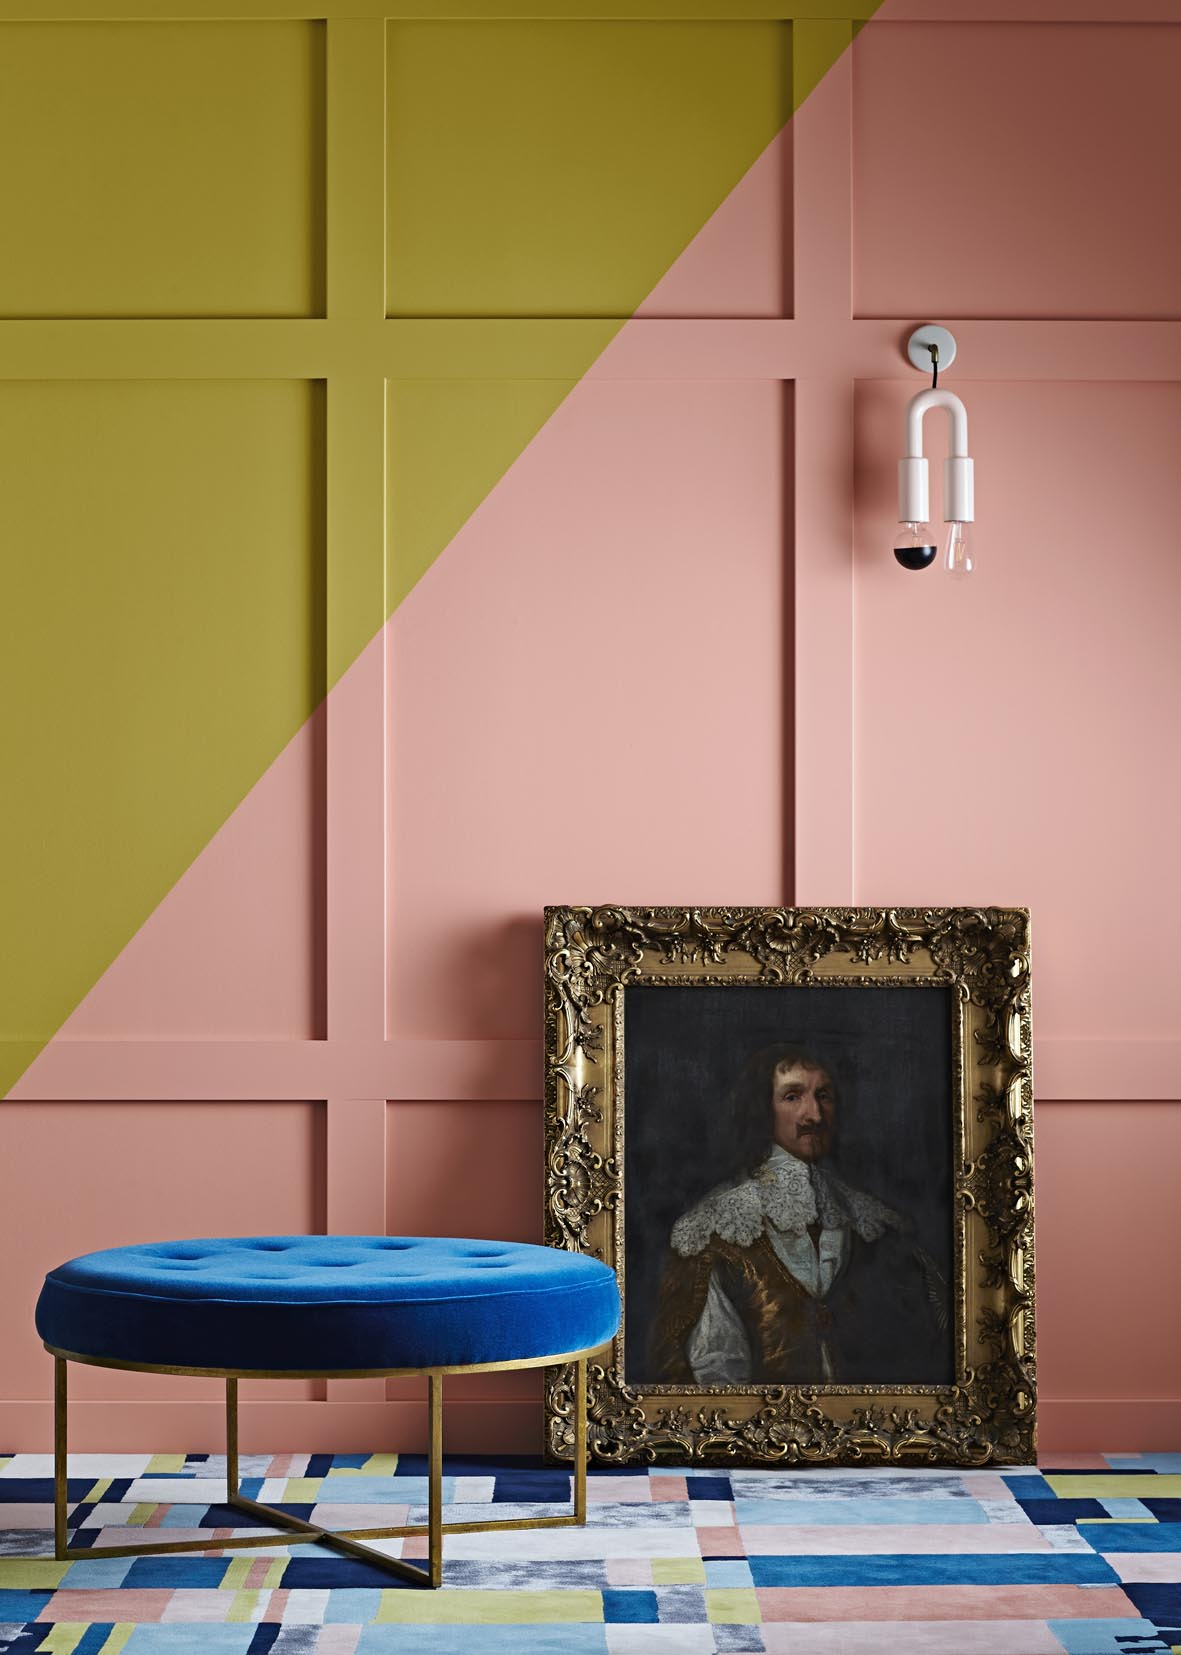 Dulux Colour Trends Autumn 2016 The Kitchen And Bathroom